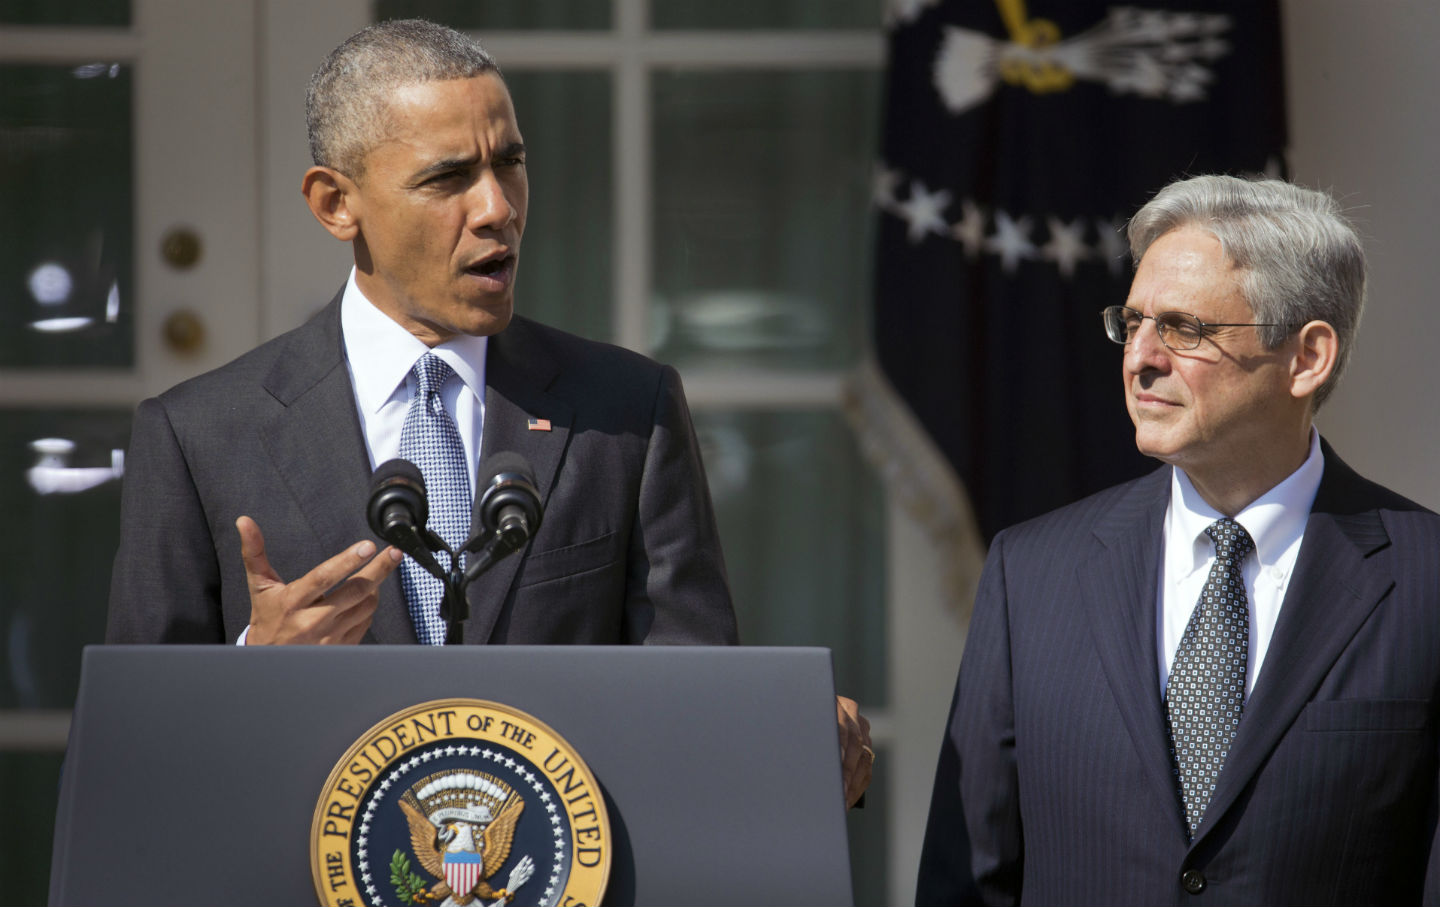 Barack Obama and Merrick Garland